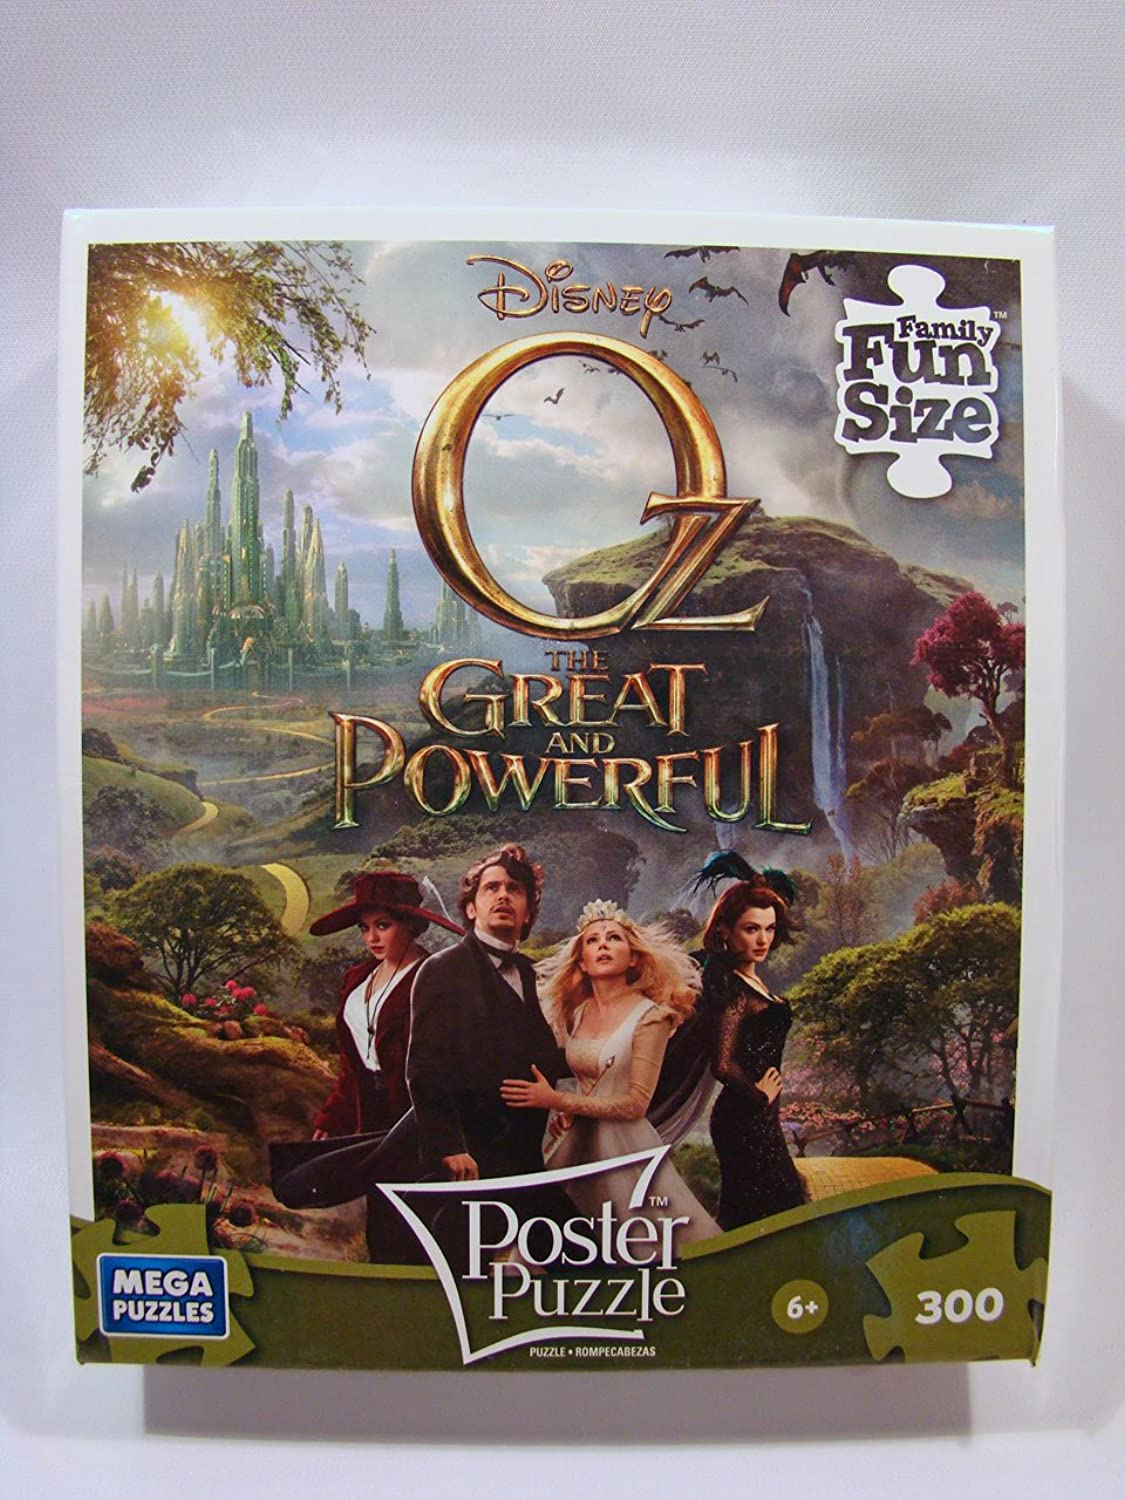 Disney 300 piece Poster Puzzle - The Great and Powerful Oz Puzzle